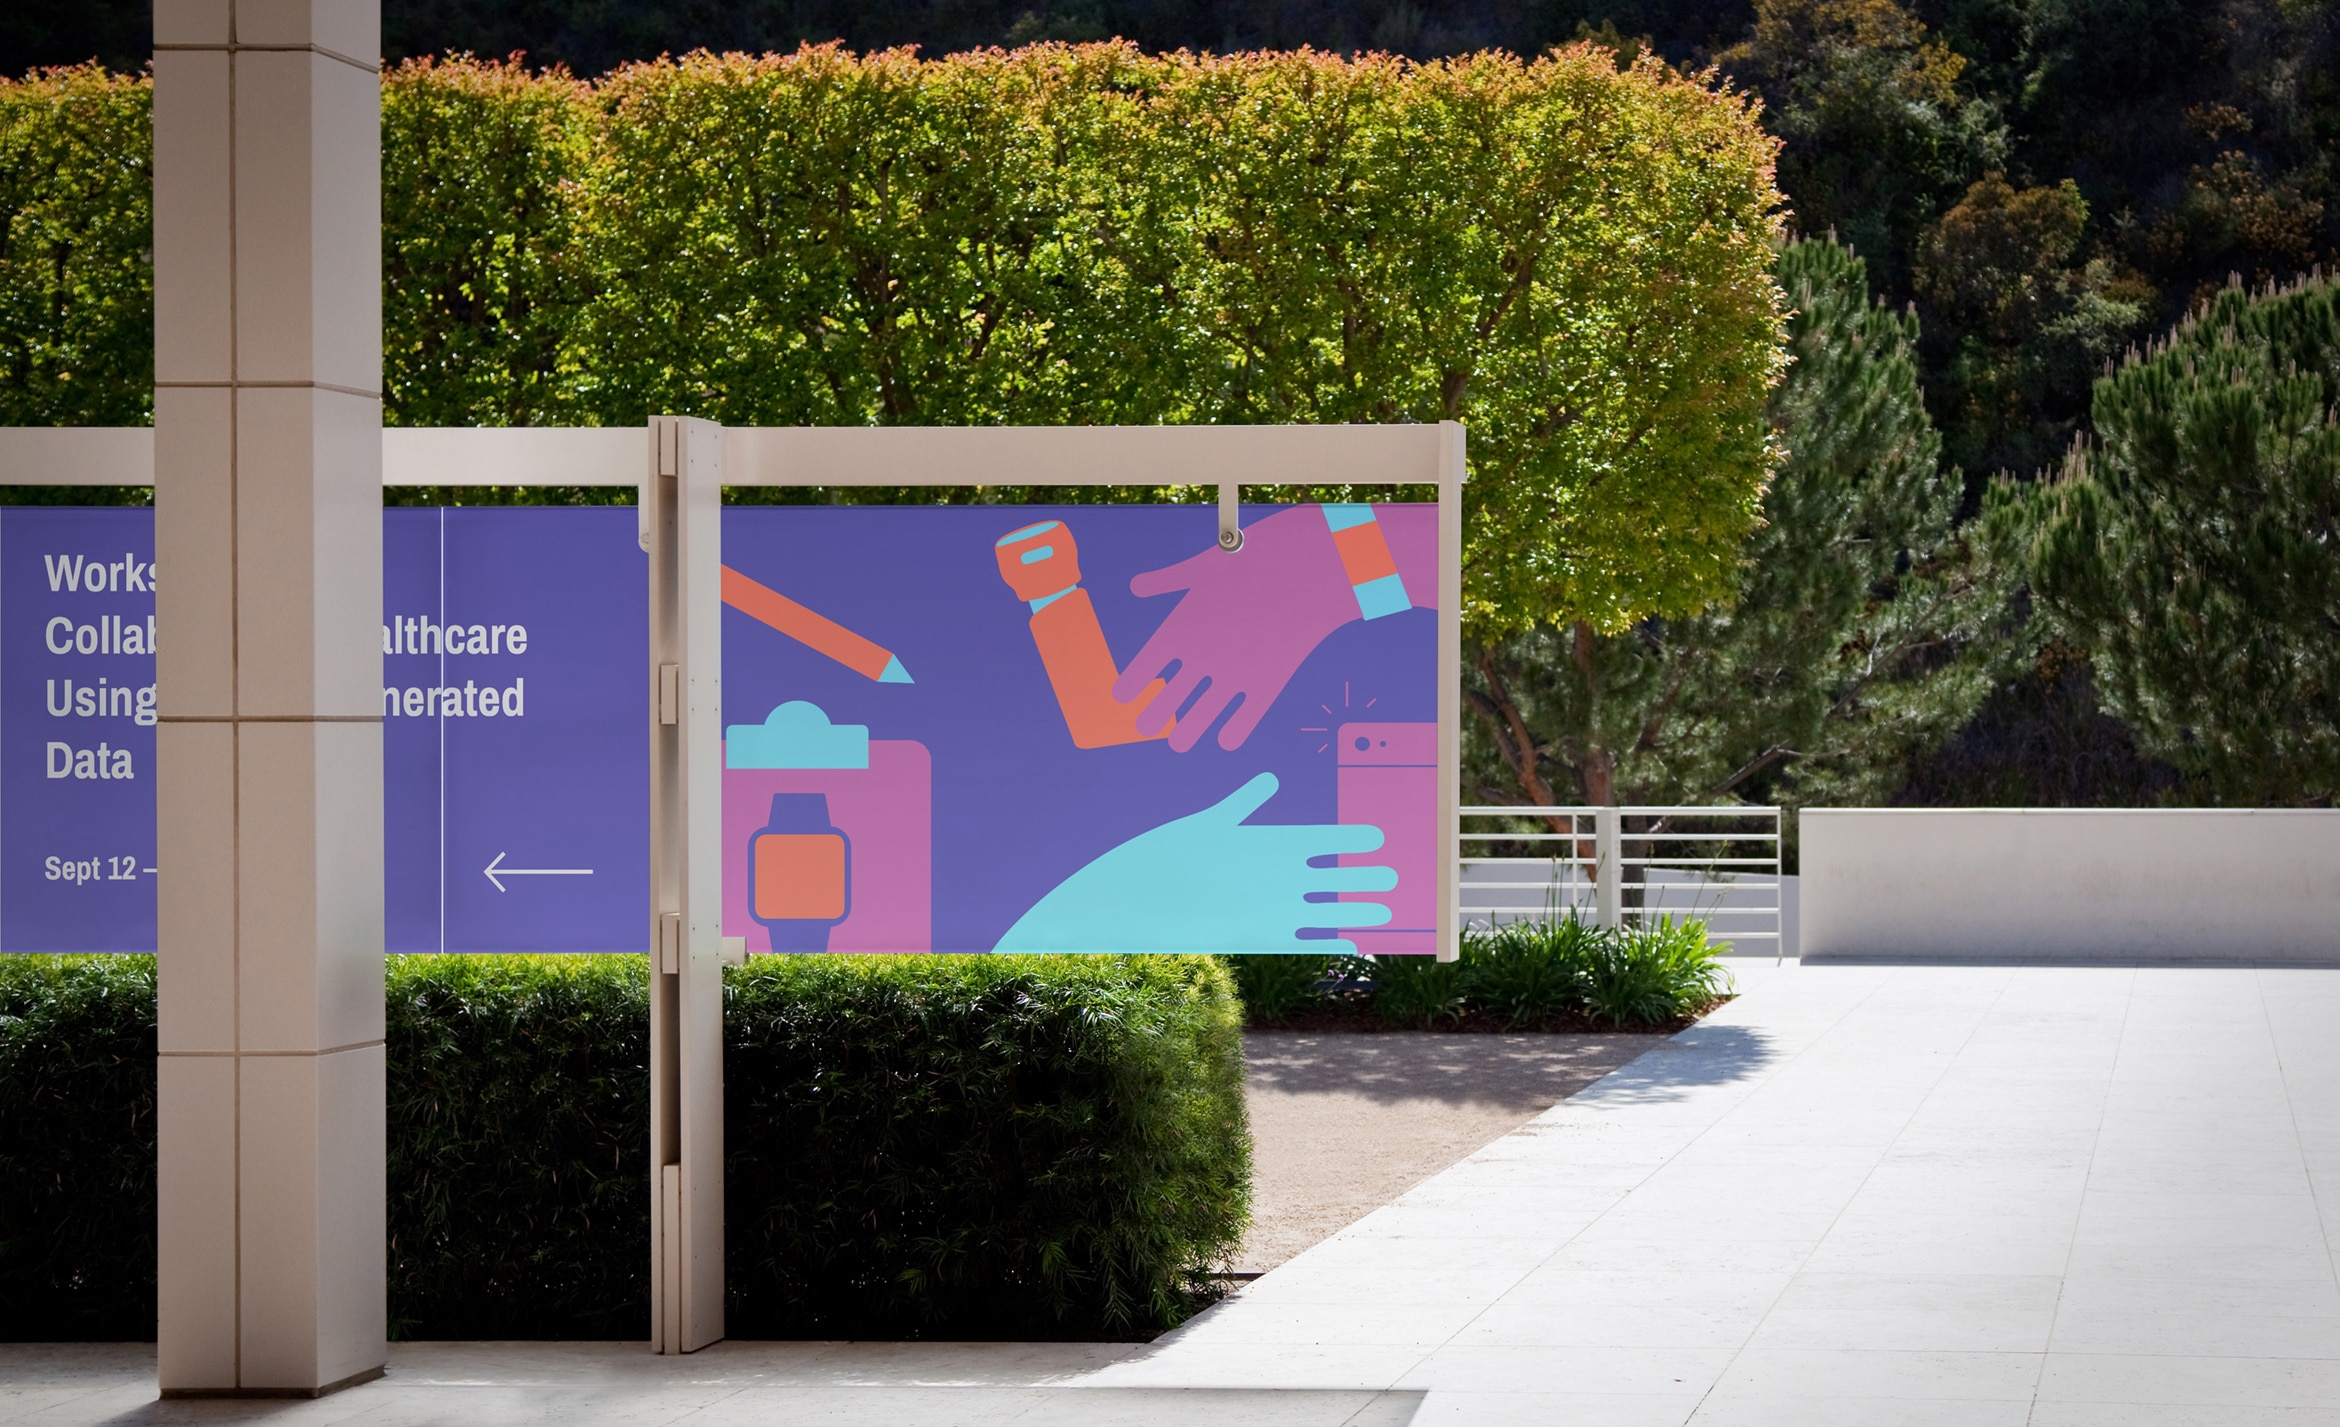 Outdoor wayfinding for Patient-Generated Data workshop featuring illustrations of hands and different forms of technology used to measure data.